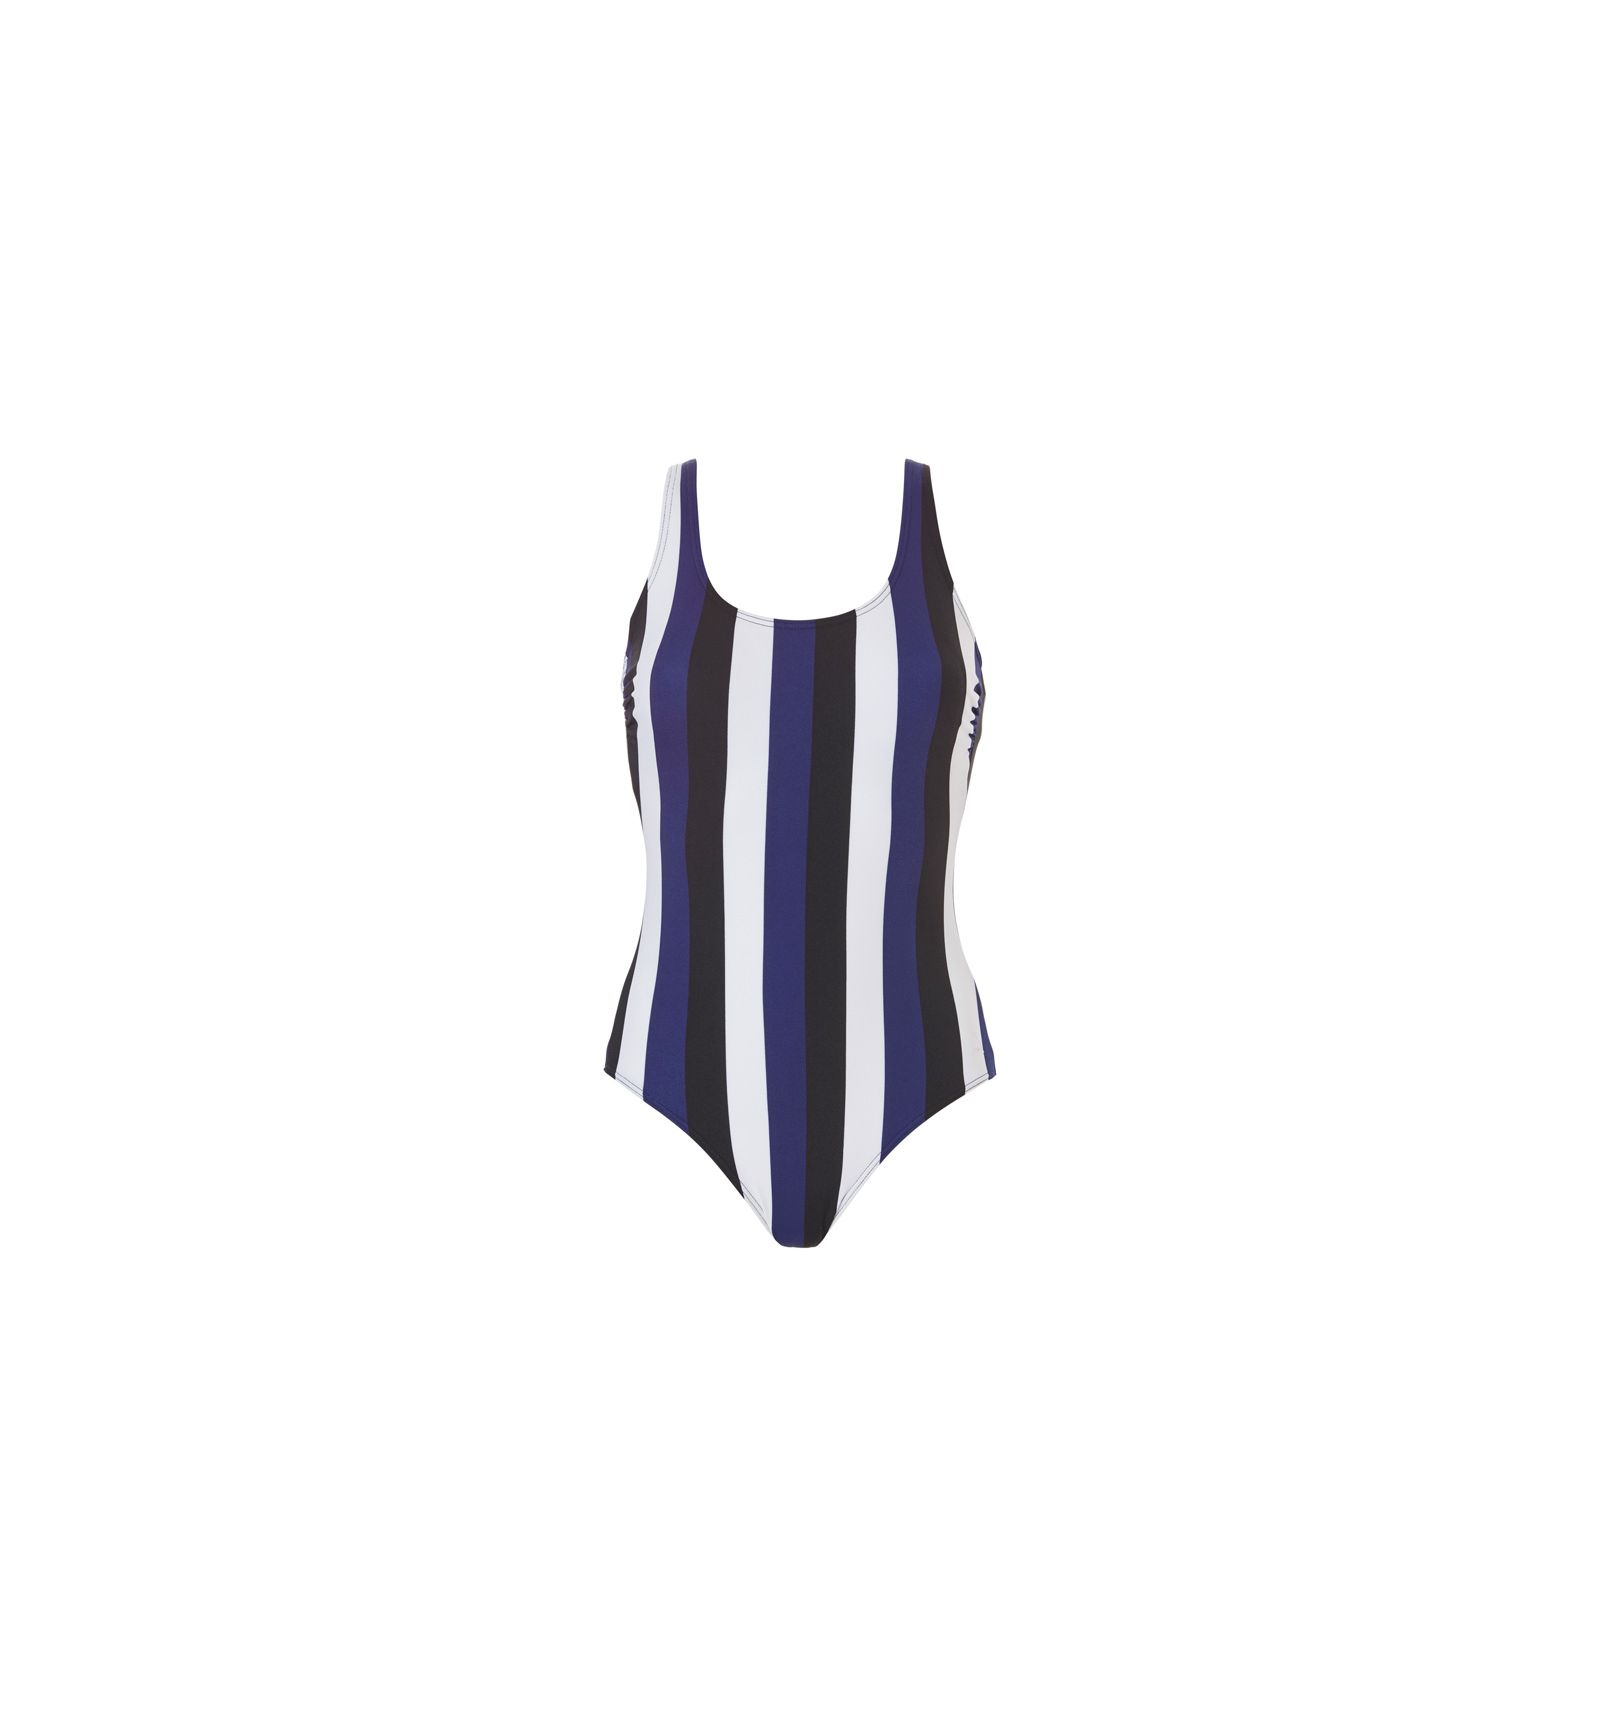 Badpak Met Softcups.Tweka Badpak Soft Cups Navy Vertical Lines Ten Cate Shop Com